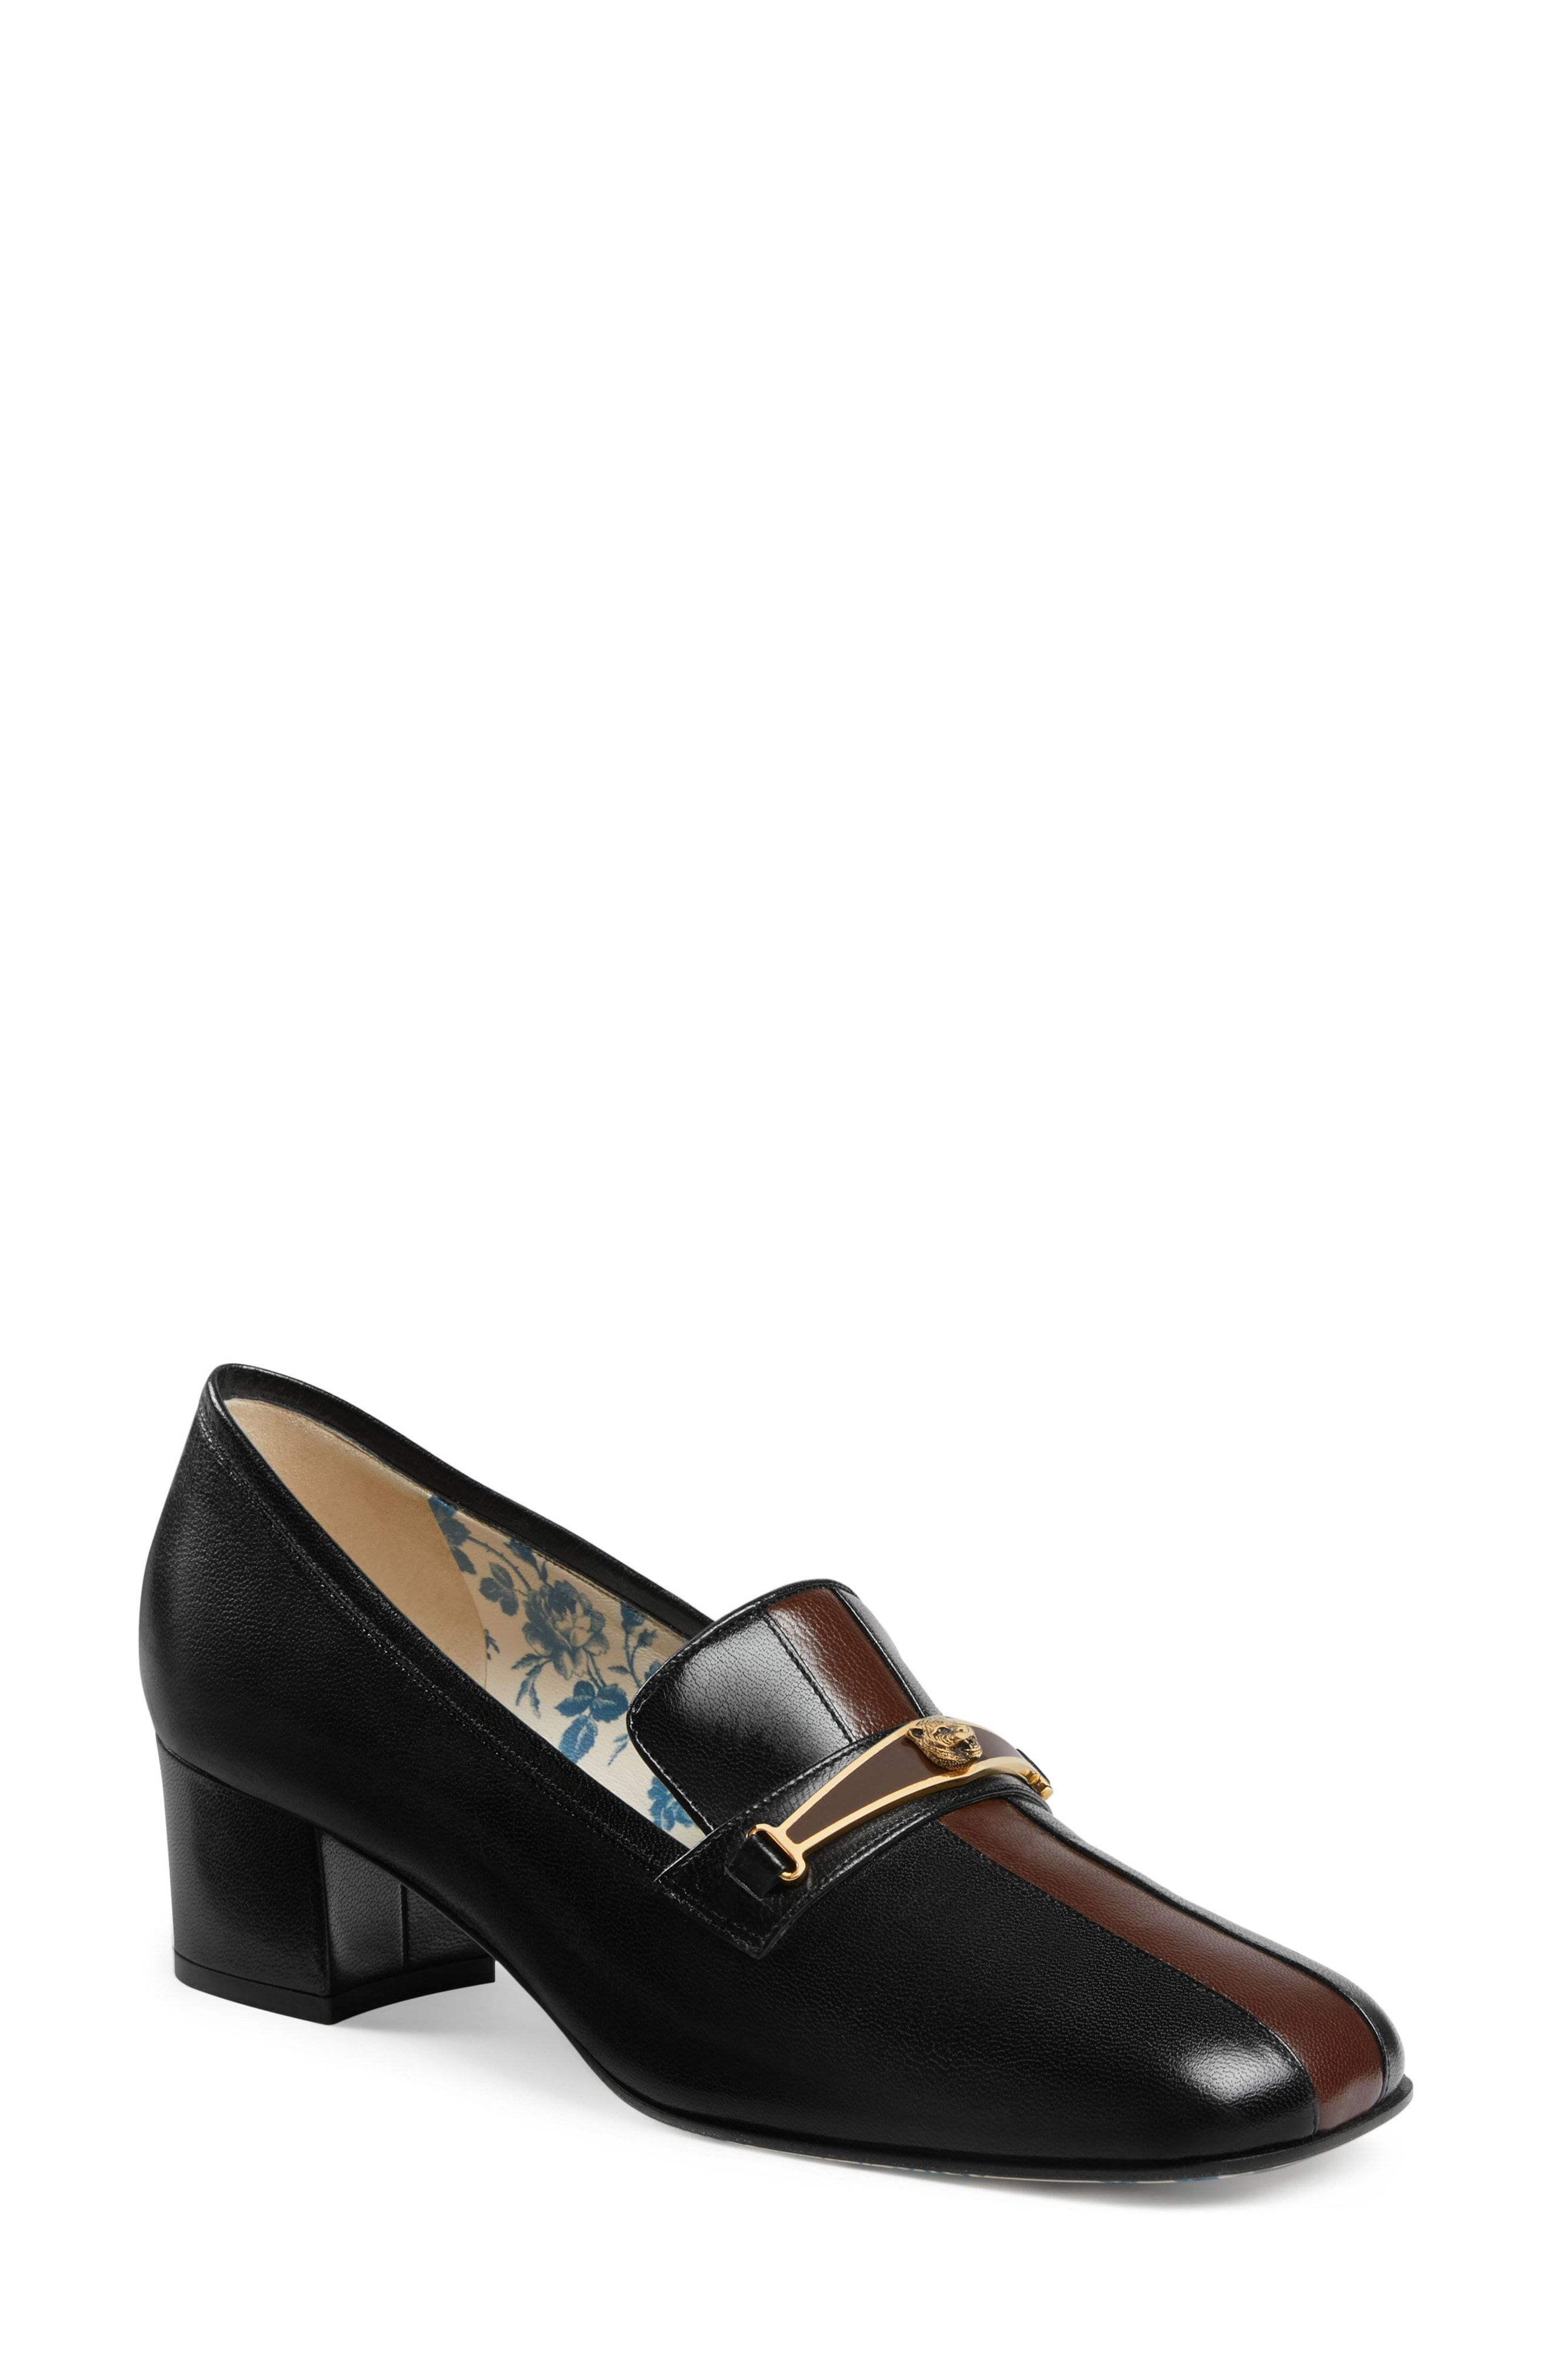 9dd6d7caf Gucci Loafer Pump available at #Nordstrom | Shoes | Loafers, Shoes ...